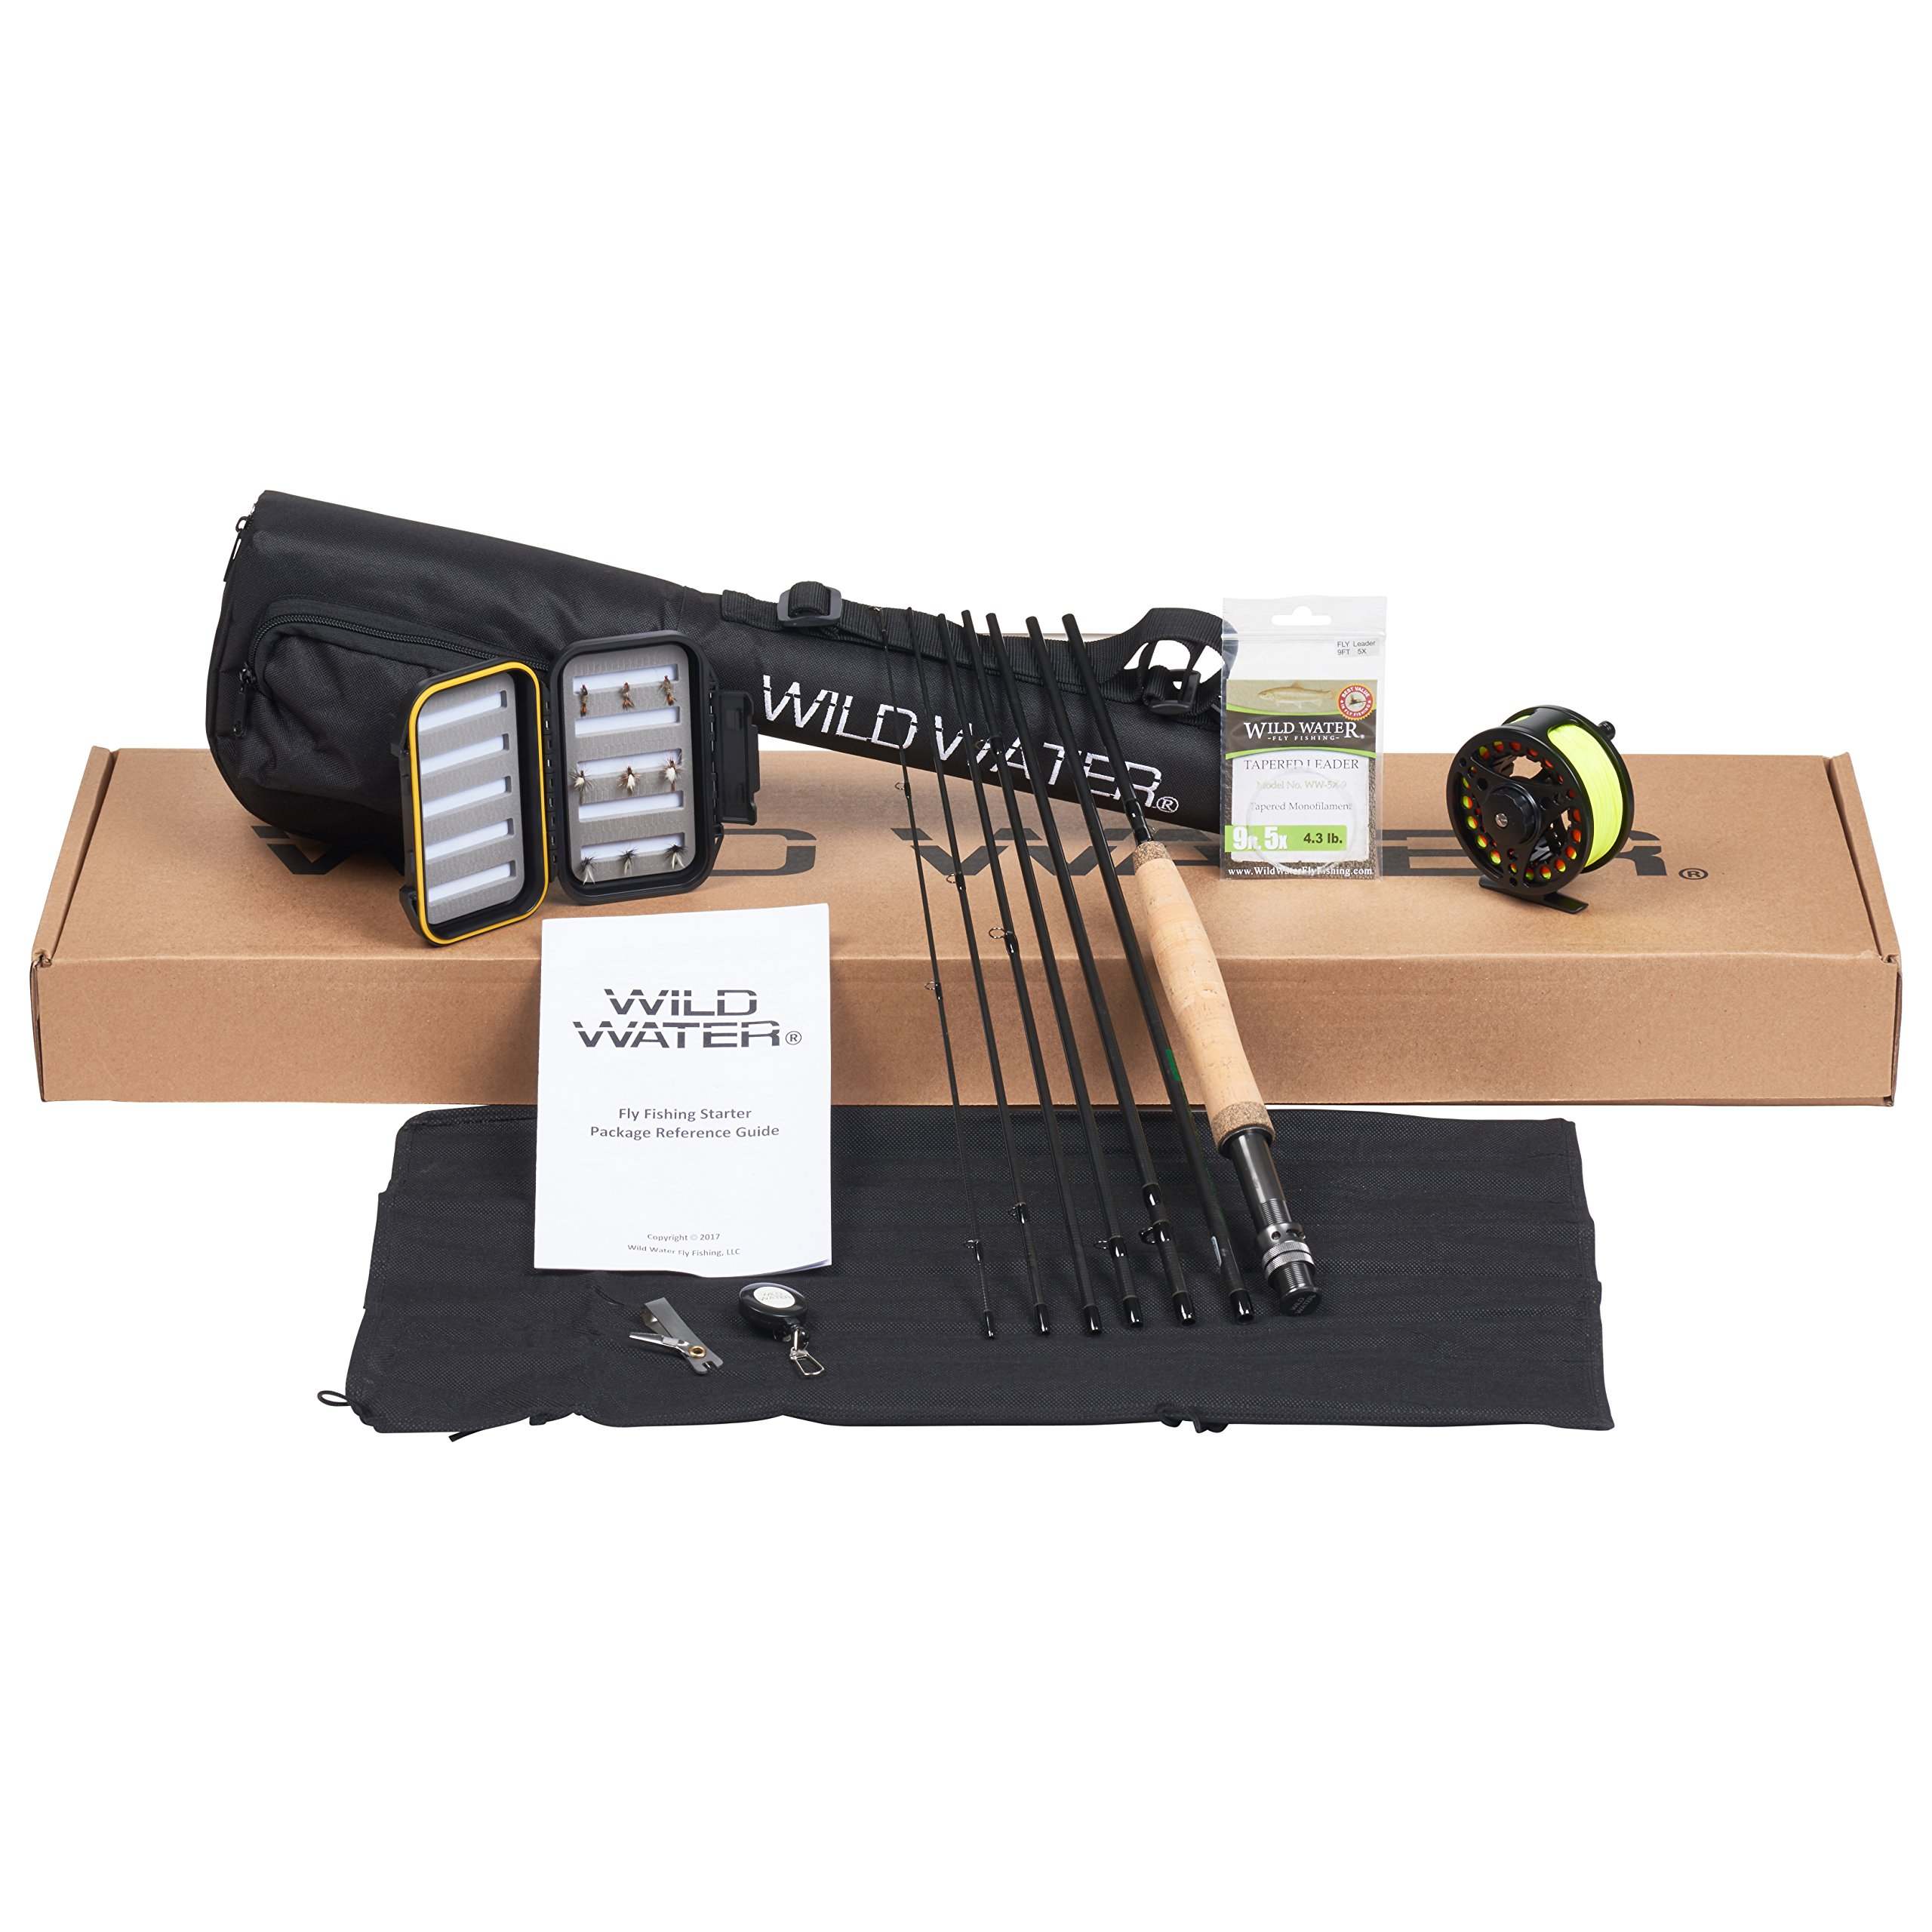 Wild Water Fly Fishing Rod and Reel Combo 7 Piece Fly Rod 5wt 9' Complete Starter Package by Wild Water